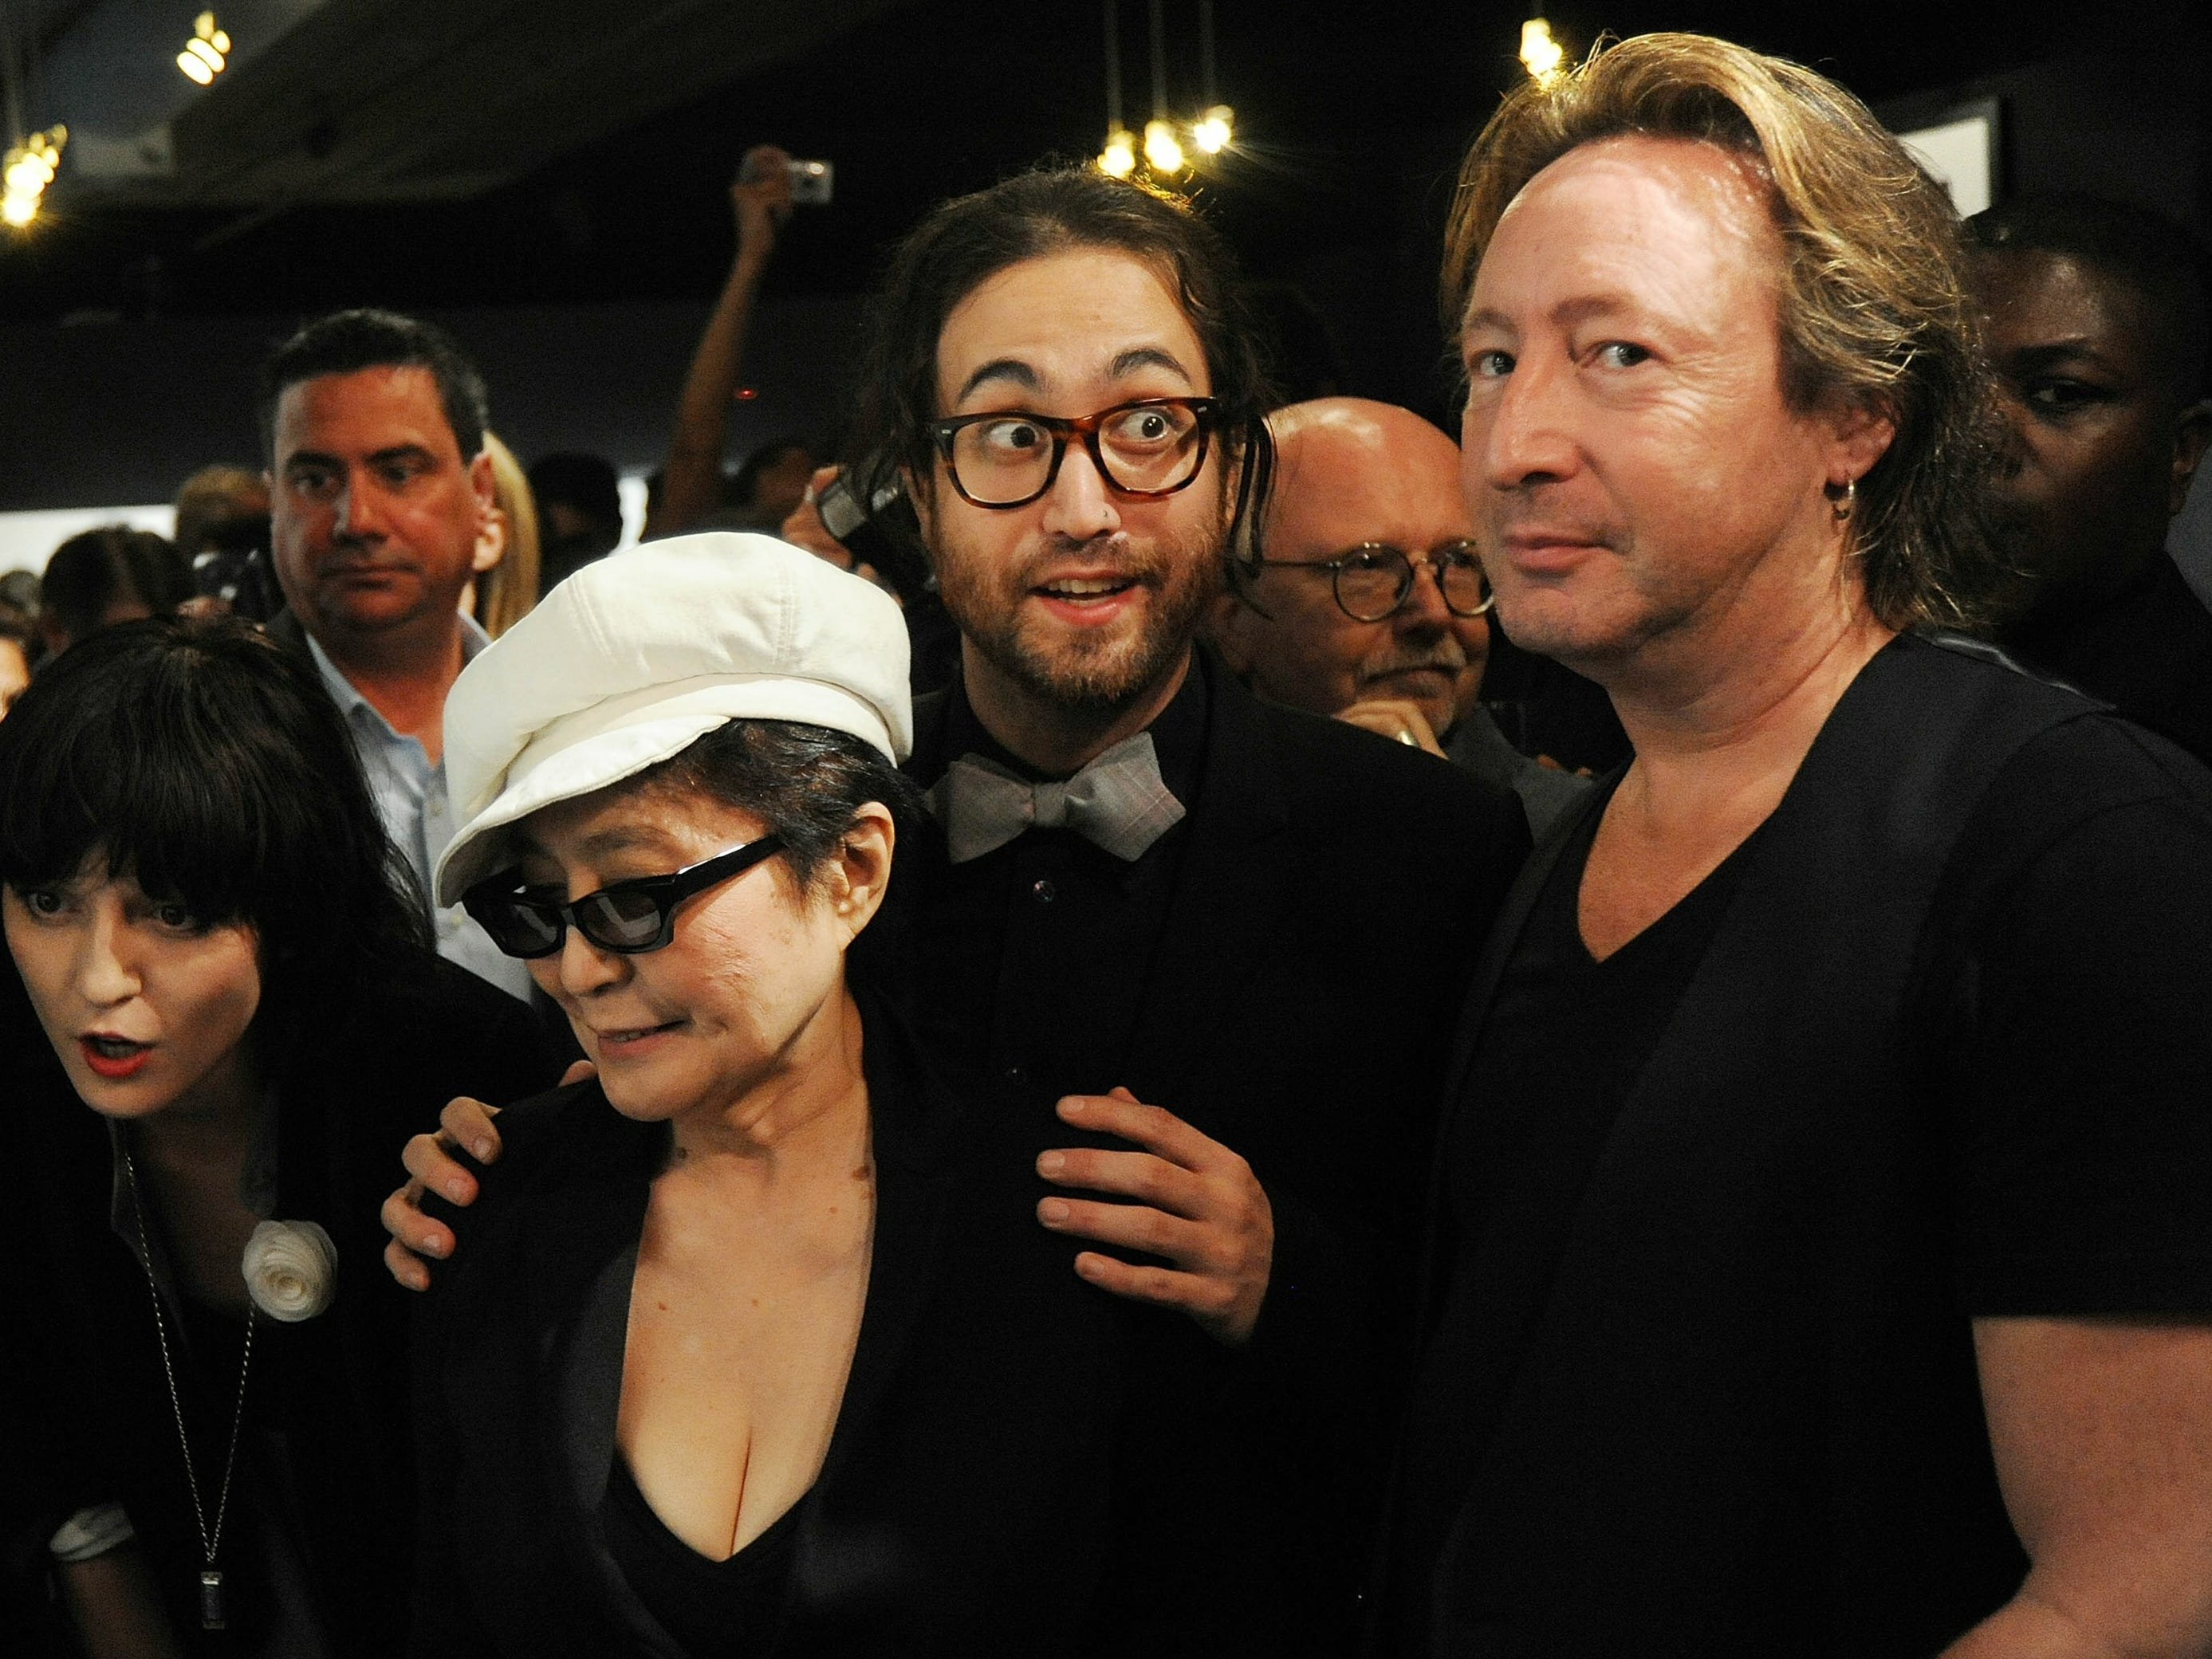 "ORG XMIT: 103889945 NEW YORK - SEPTEMBER 16:  Irina Lazarean, Sean Lennon, Yoko Ono and Julian Lennon attends the ""Timeless"" photography exhibition opening party at the Morrison Hotel Gallery on September 16, 2010 in New York City.  (Photo by Bobby Bank/WireImage) ORIG FILE ID: 103889945BB045_Timeless_By_"